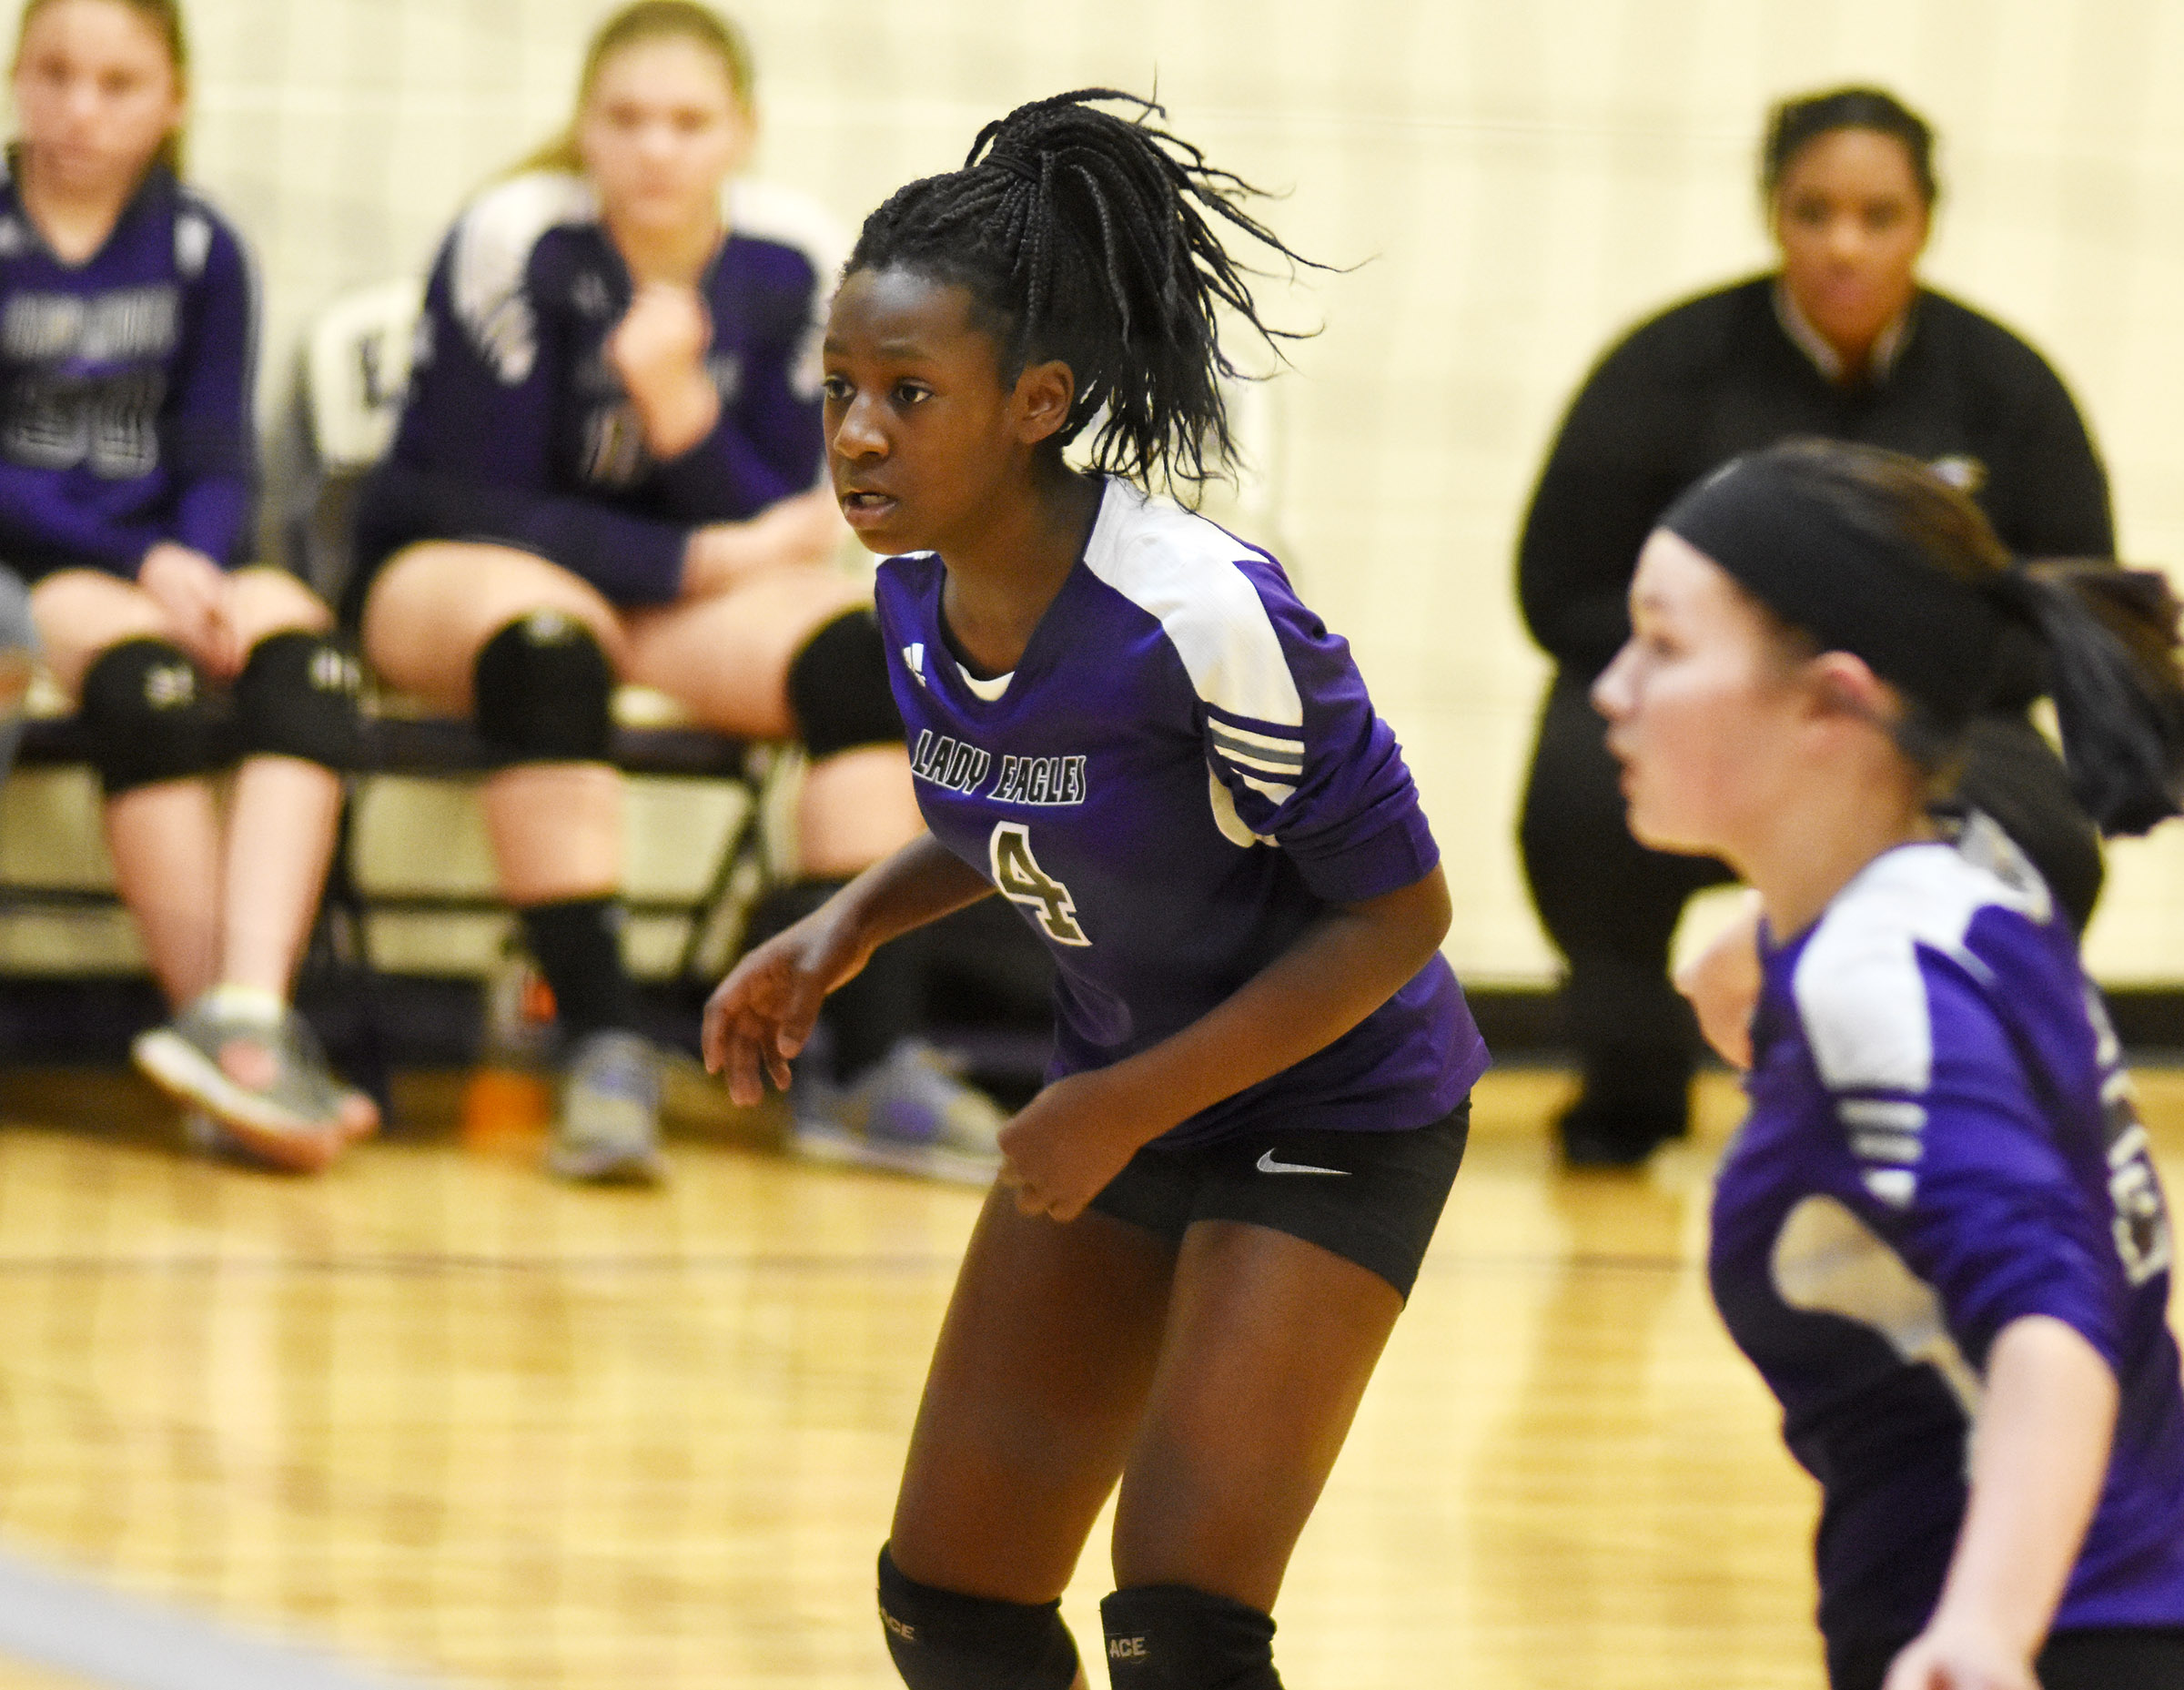 CMS eighth-grader Myricle Gholston keeps her eye on the ball.